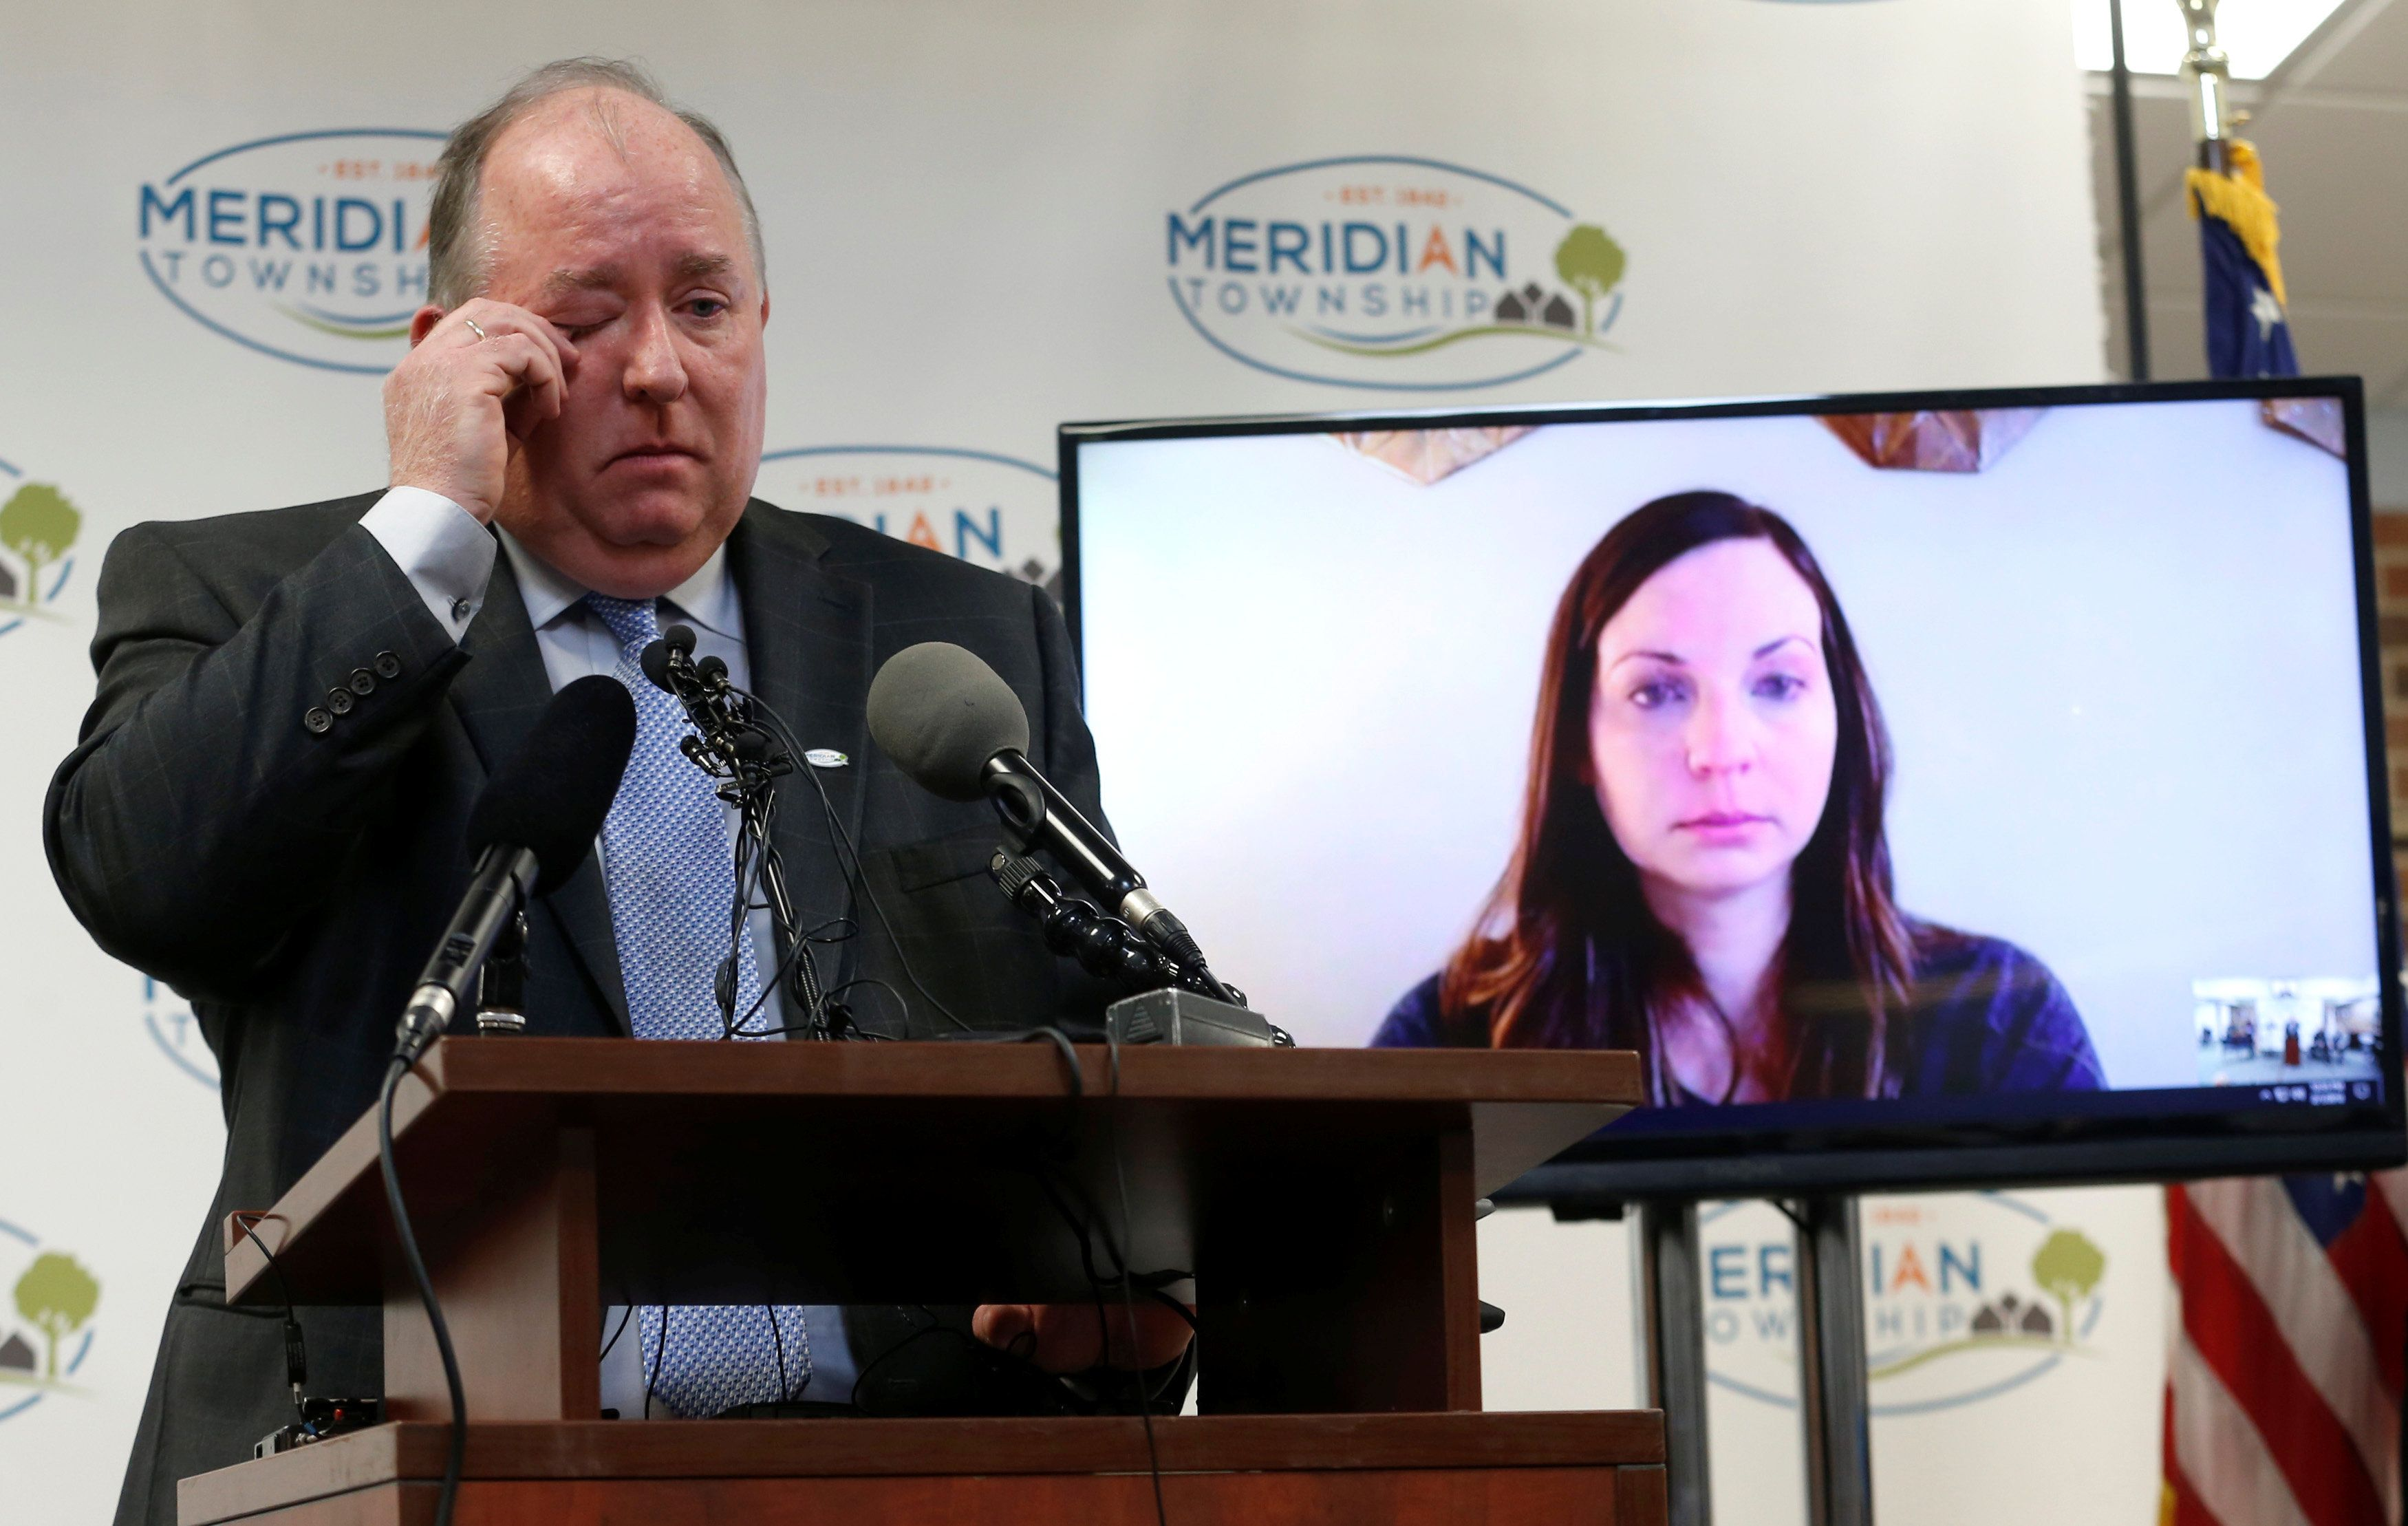 Meridian Township manager Frank Walsh apologizes to sexual assault survivor Brianne Randall-Gay (on video screen) on Feb